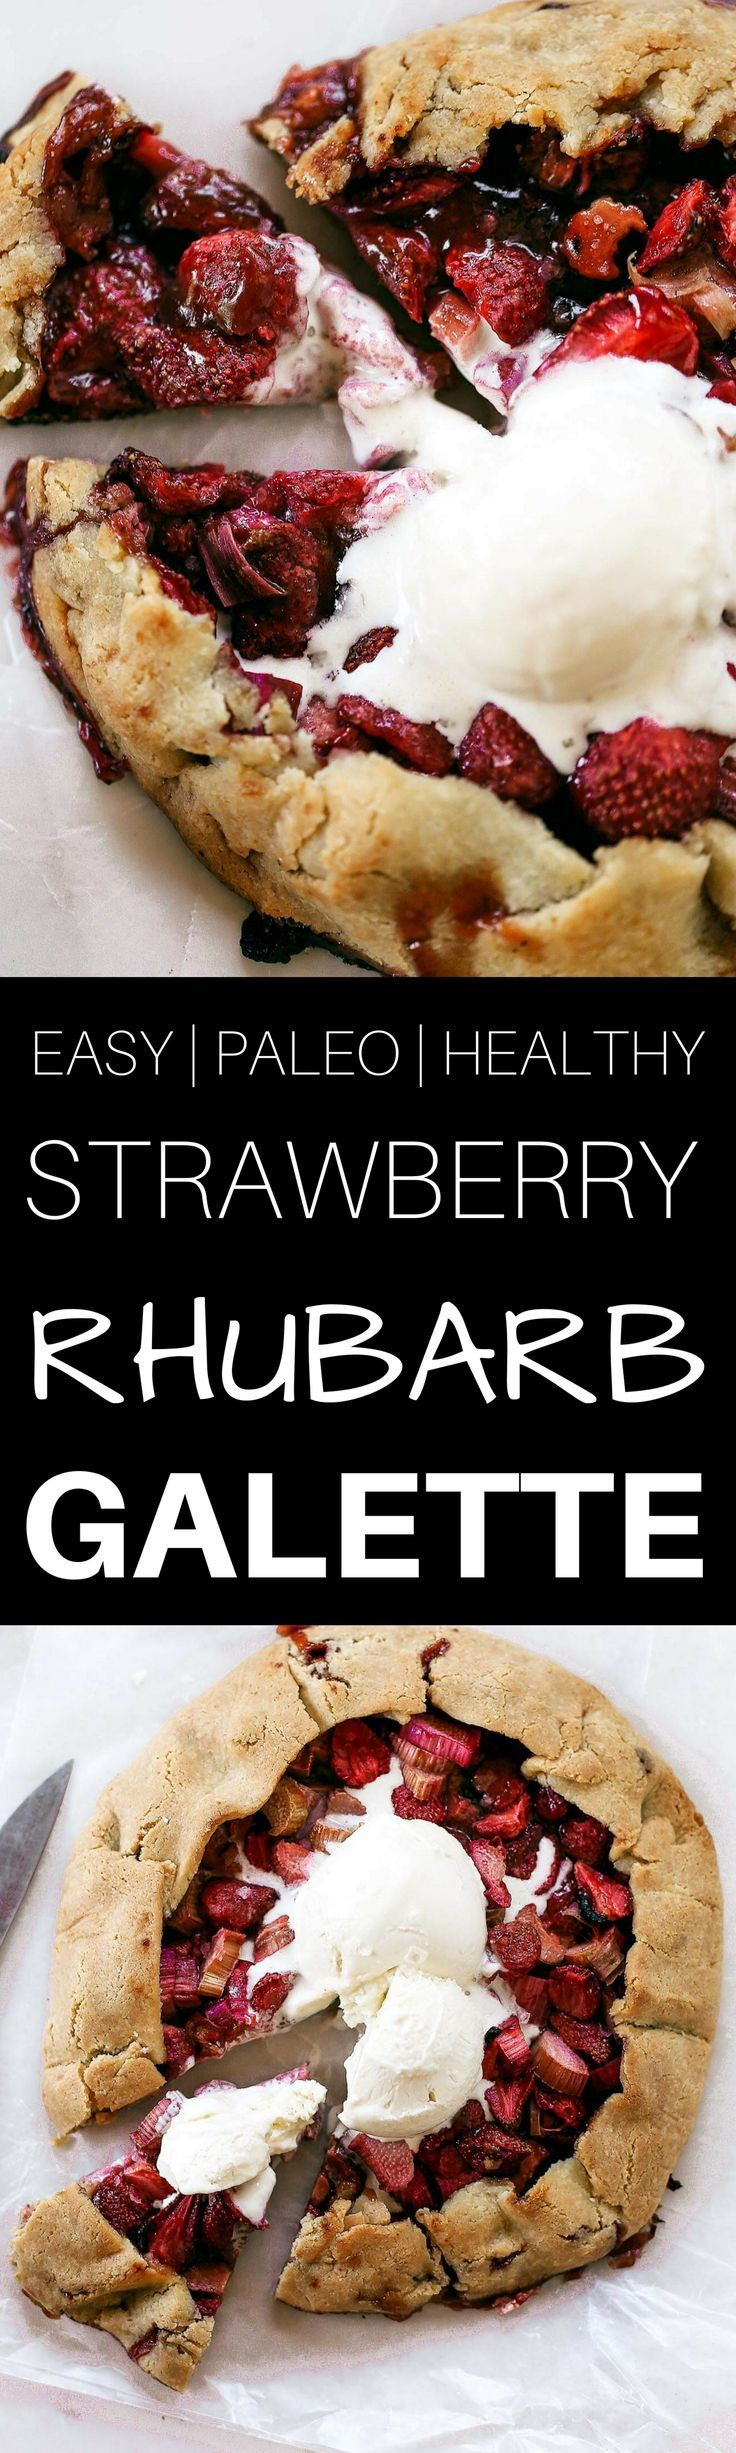 """Incredibly easy grain free & paleo strawberry rhubarb galette. A healthy and simple summer treat made with whole food ingredients. Naturally gluten free and dairy free. Sweetened without refined sugar. That sugary gooey fruit filling is to die for! Especially paired with a light and """"buttery"""" almond flour crust. Gluten free galette. Paleo fruit galette. best paleo strawberry galette. easy healthy galette recipe. paleo galette recipe. easy gluten free summer desserts. grain free..."""